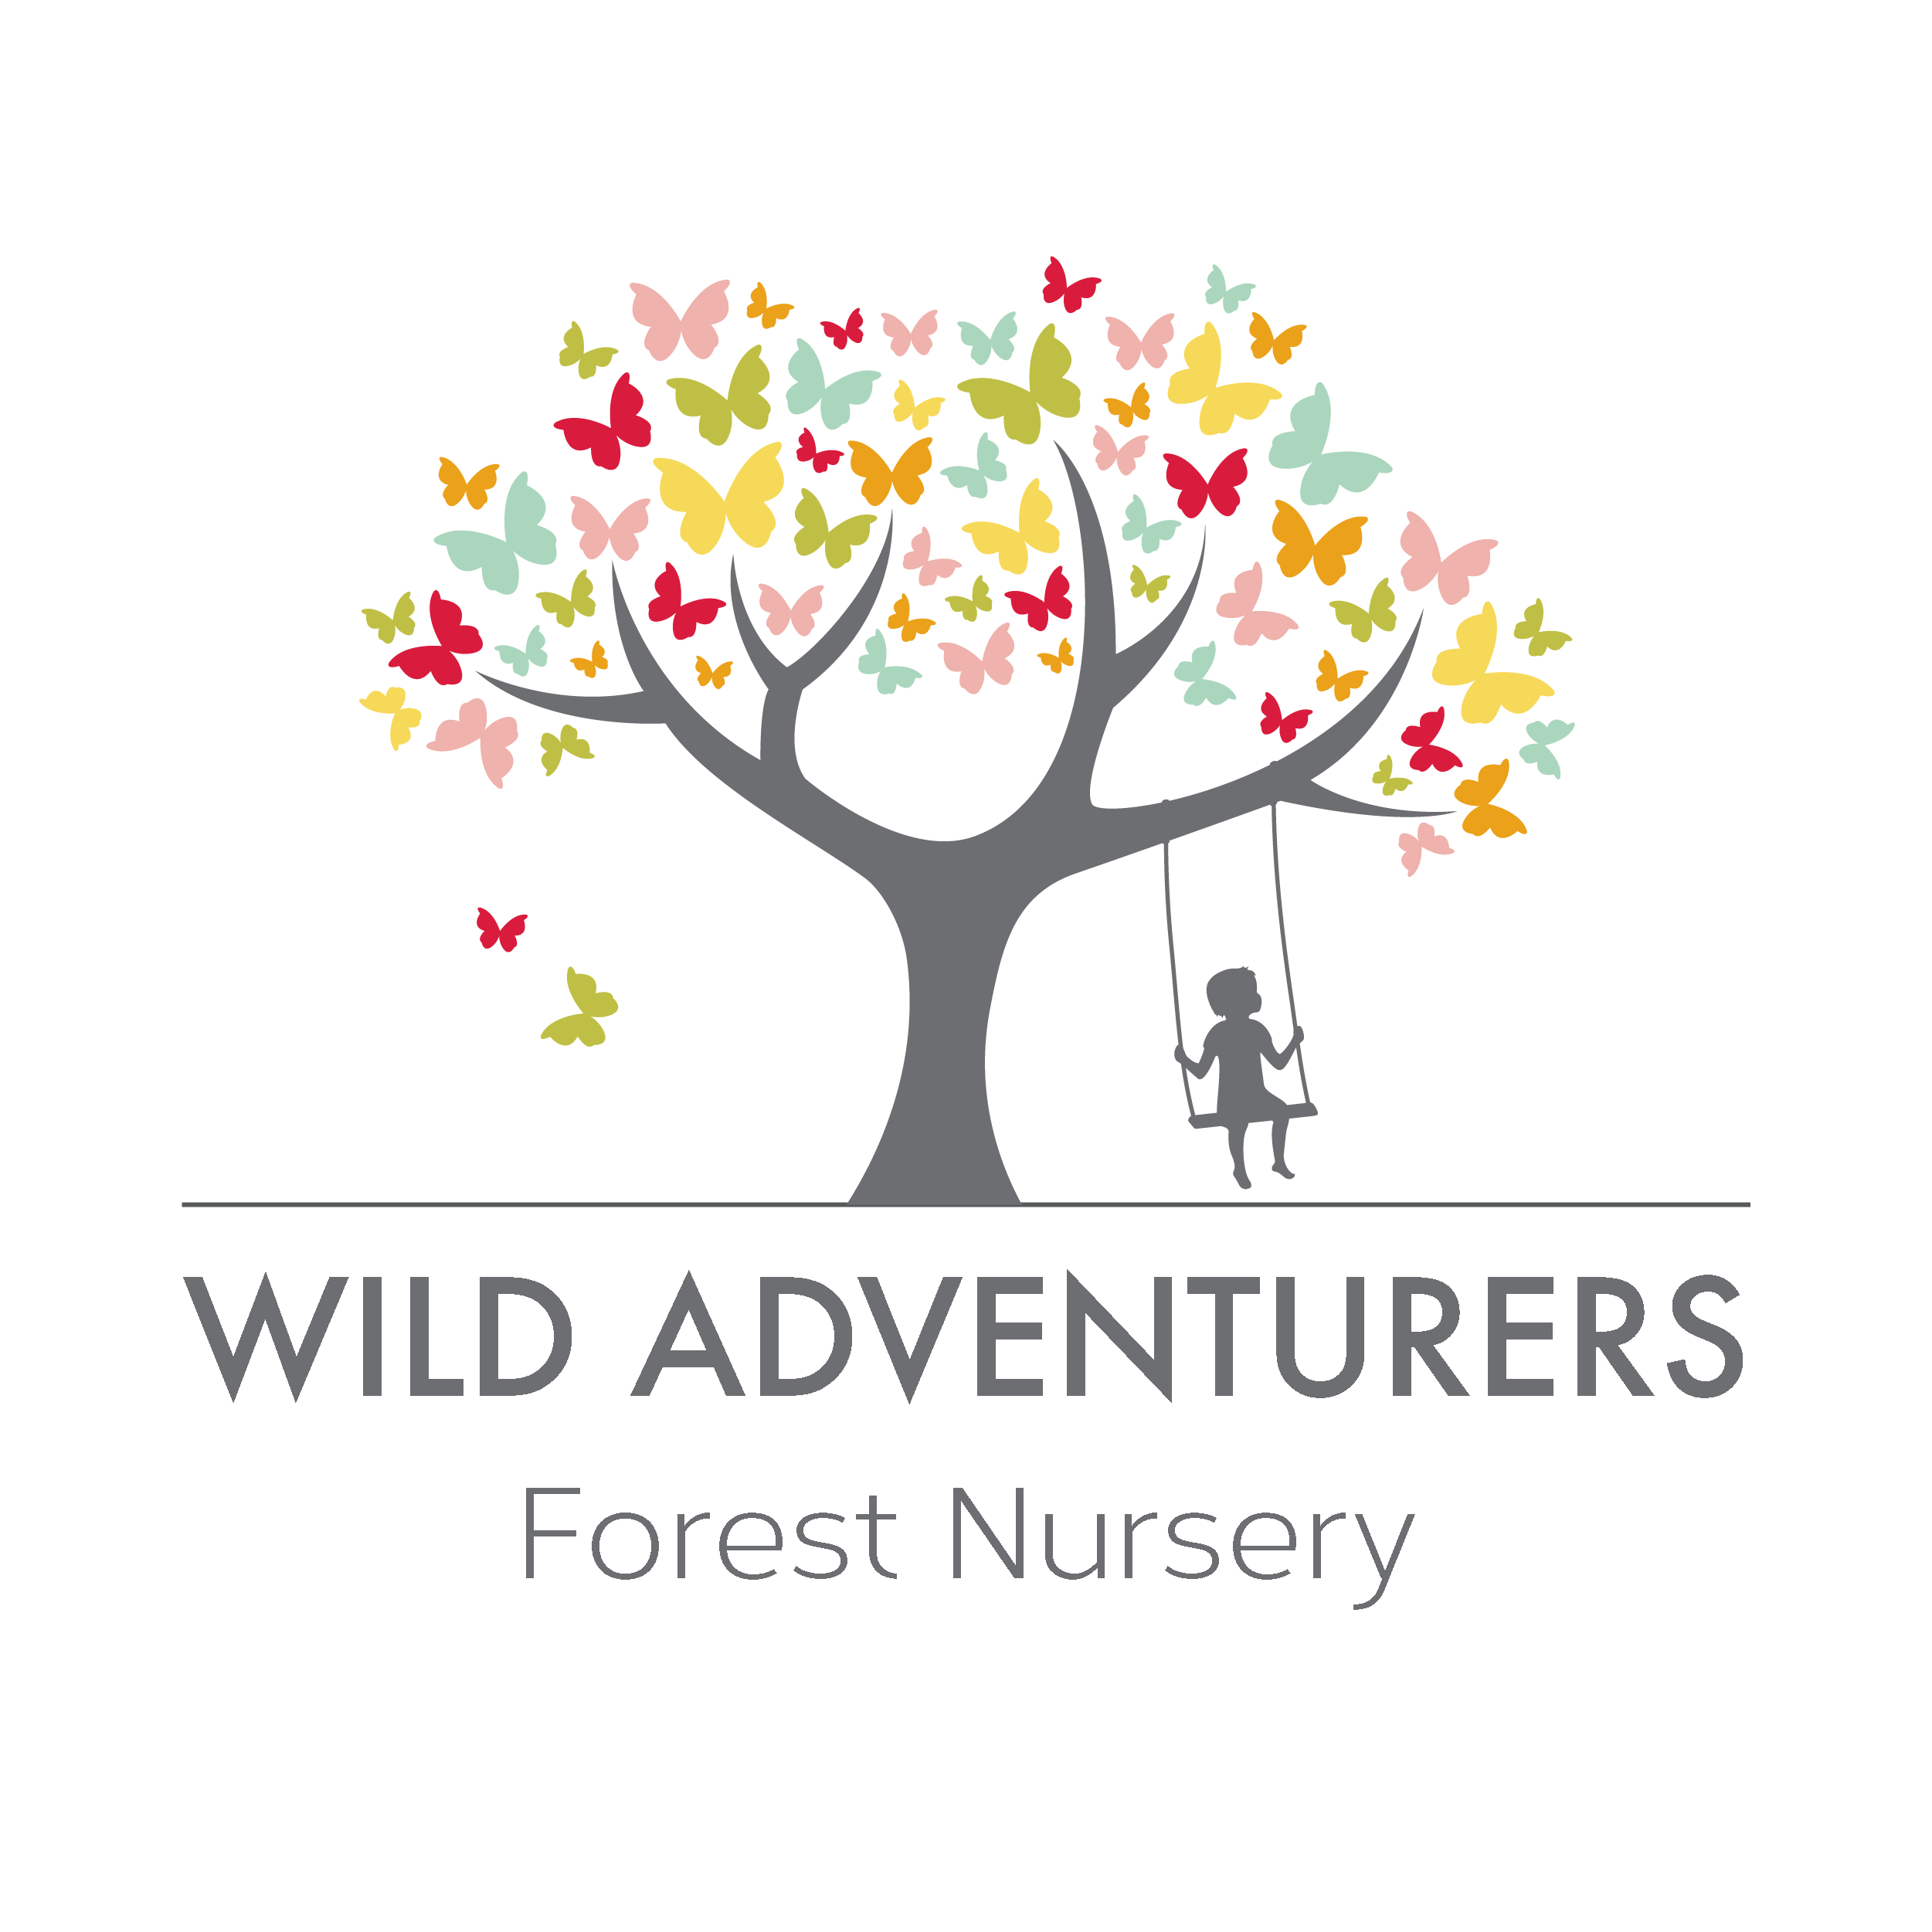 Wild Adventurers Forest Nursery